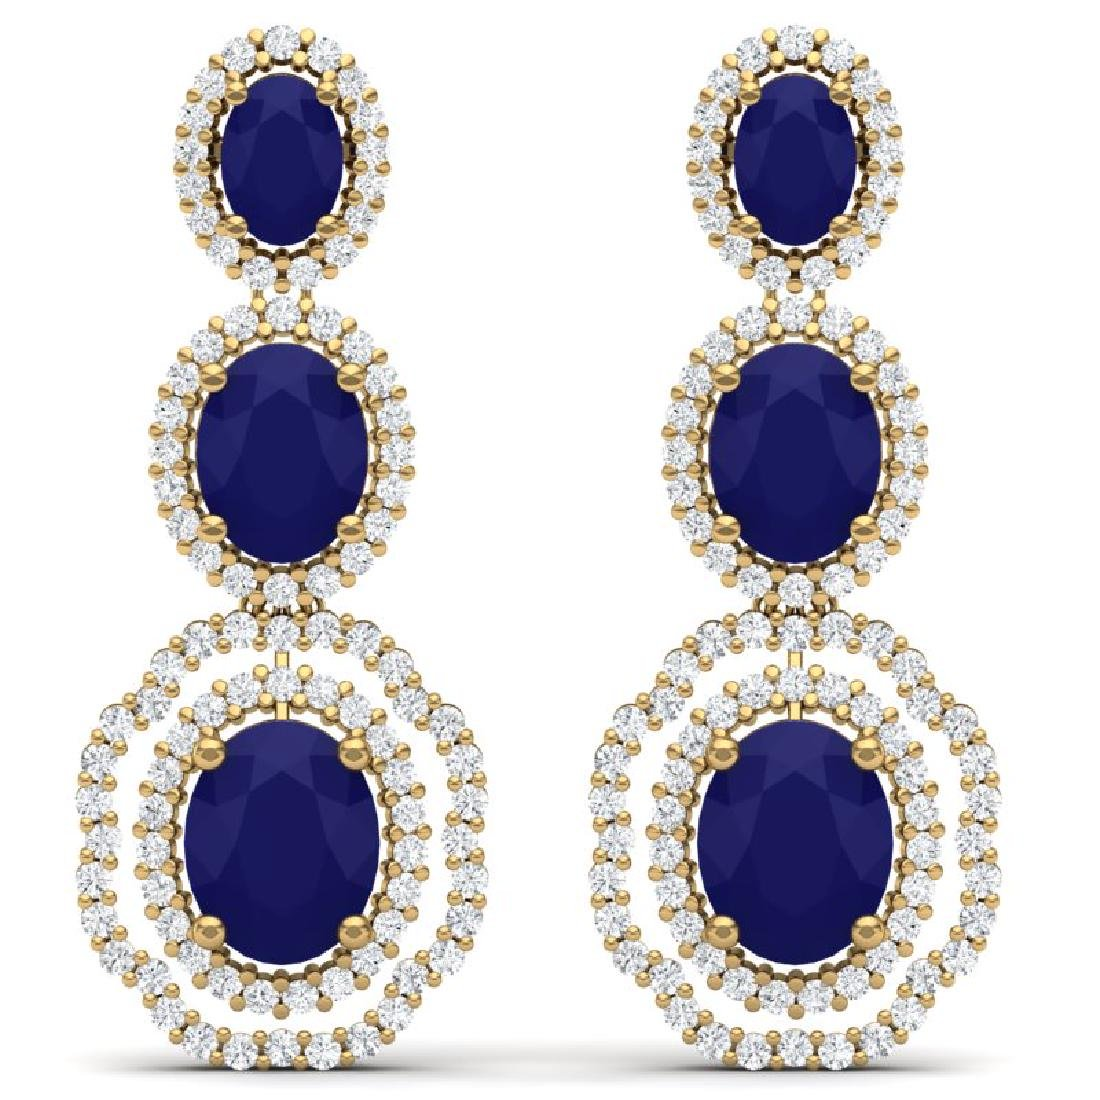 17.01 CTW Royalty Sapphire & VS Diamond Earrings 18K